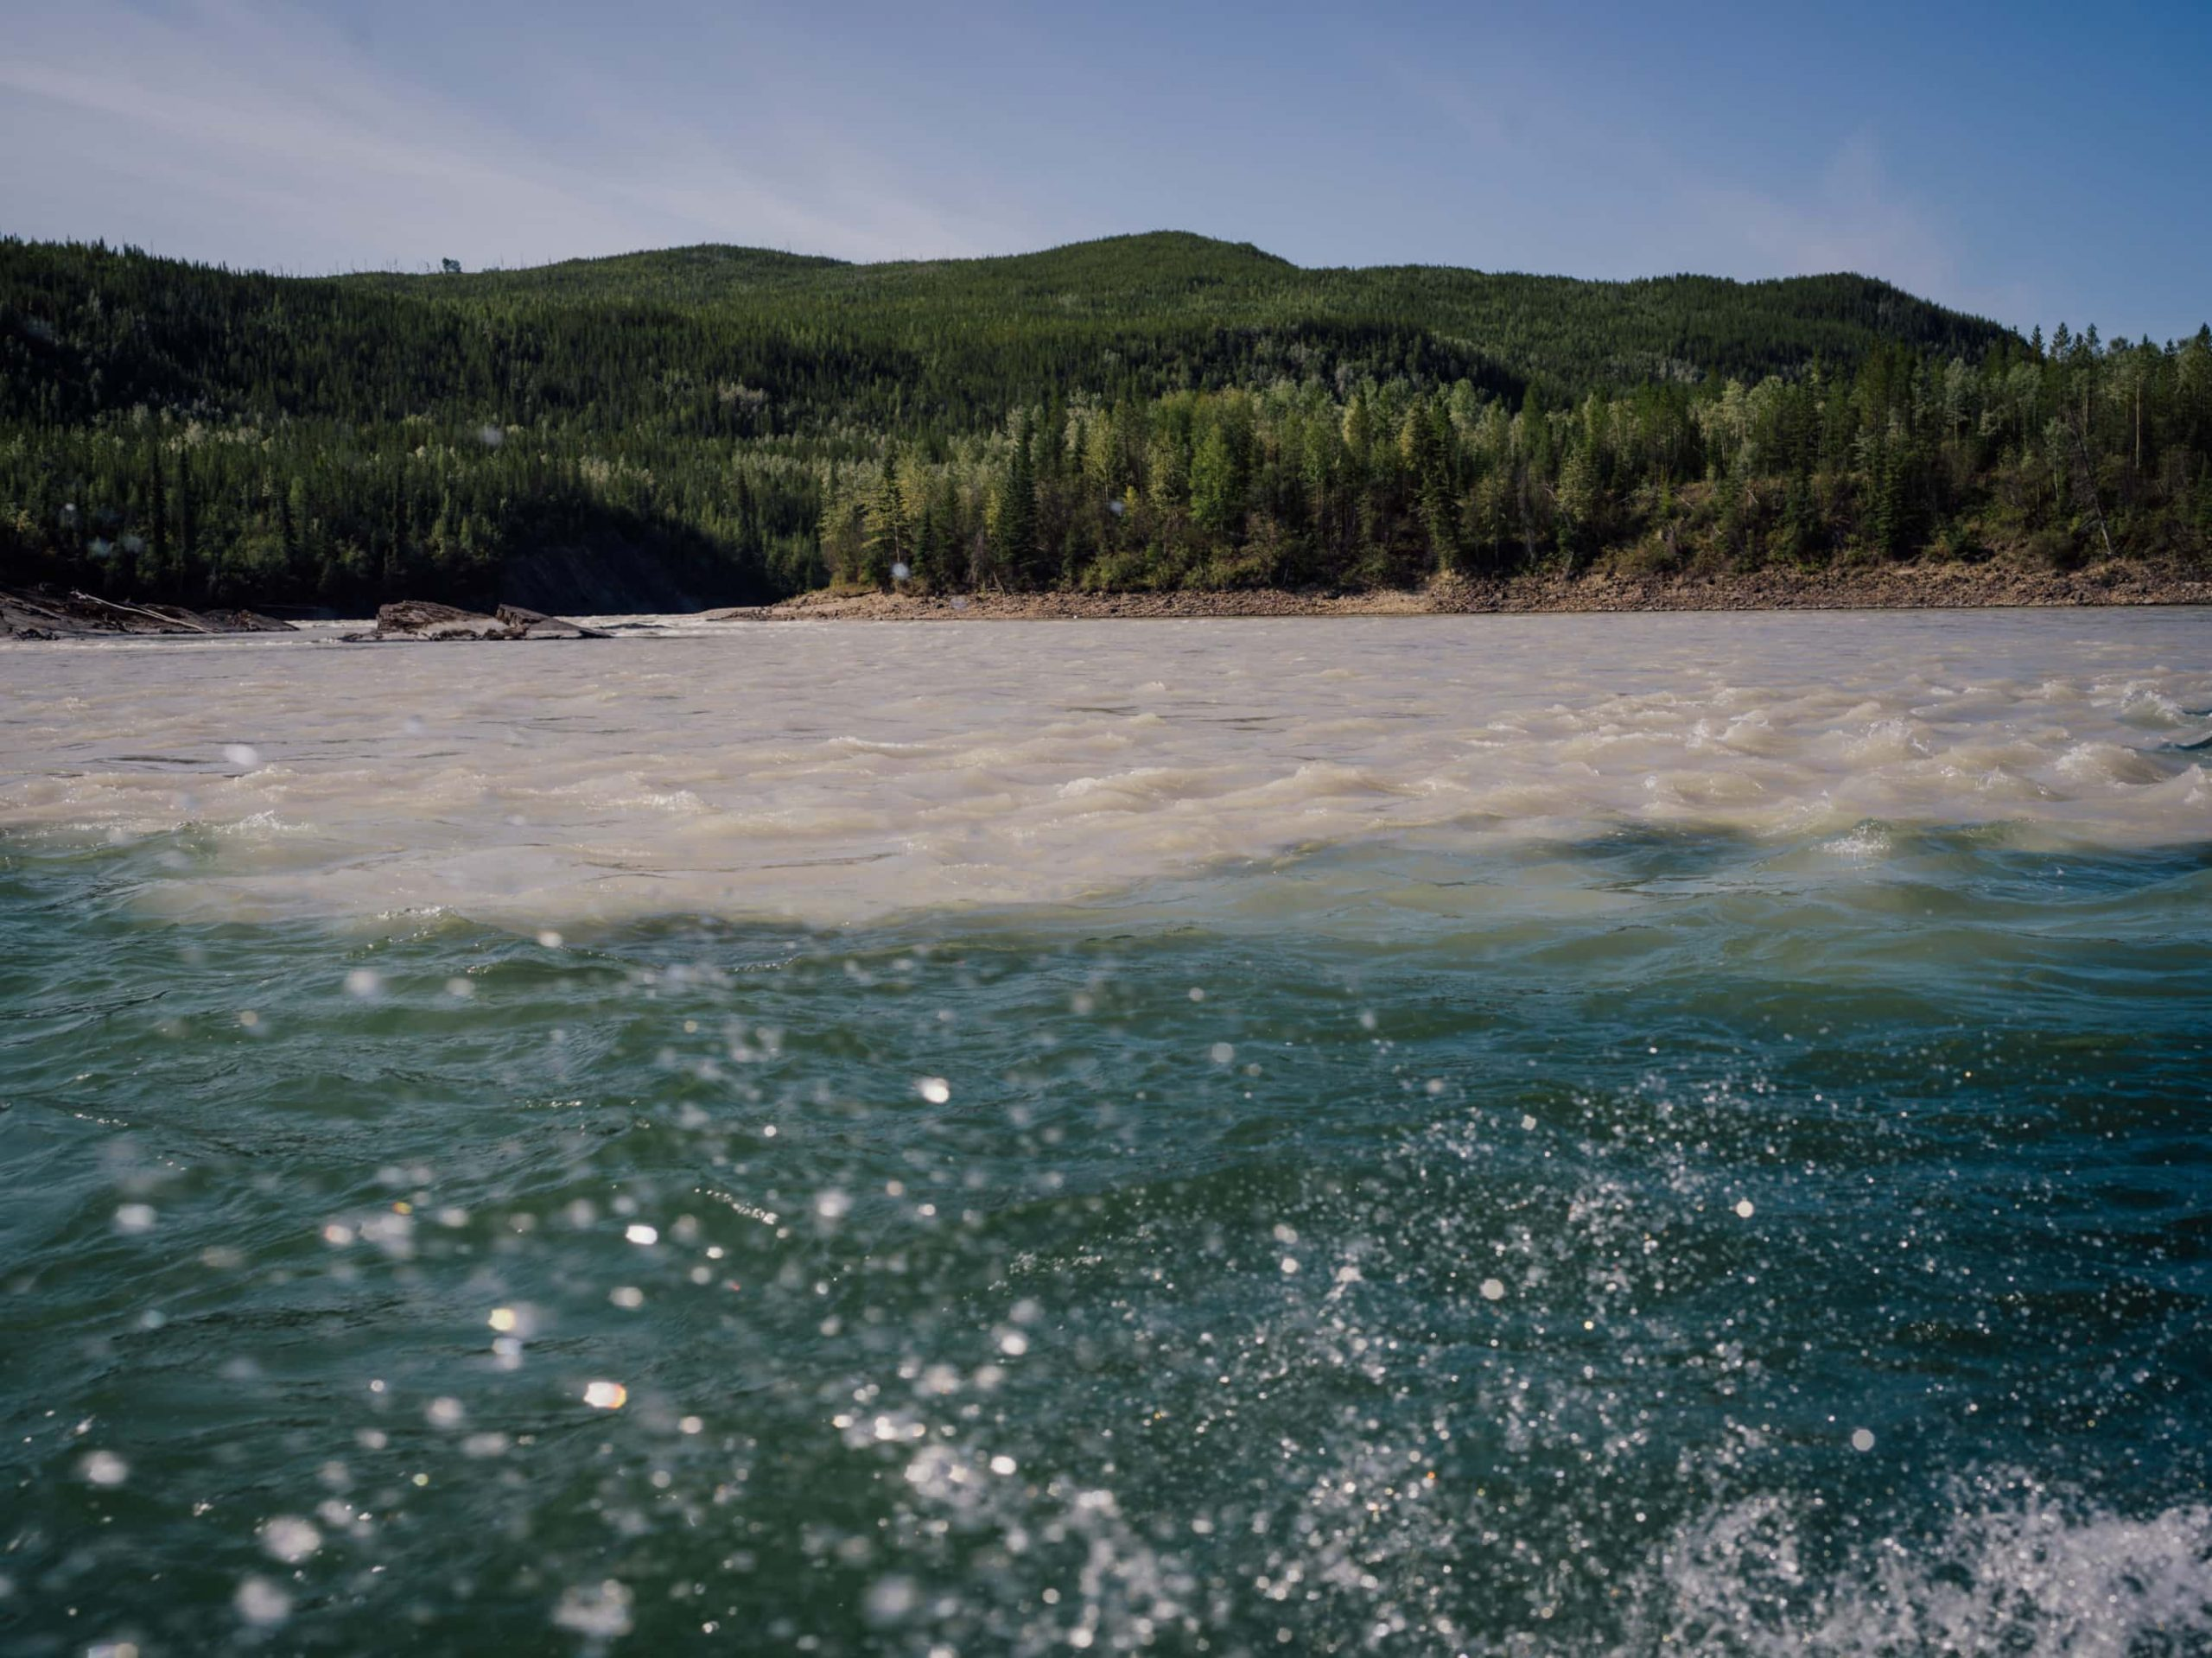 'Serengeti of the North': the Kaska Dena's Visionary Plan to Protect a Huge Swath of B.C. Wilderness